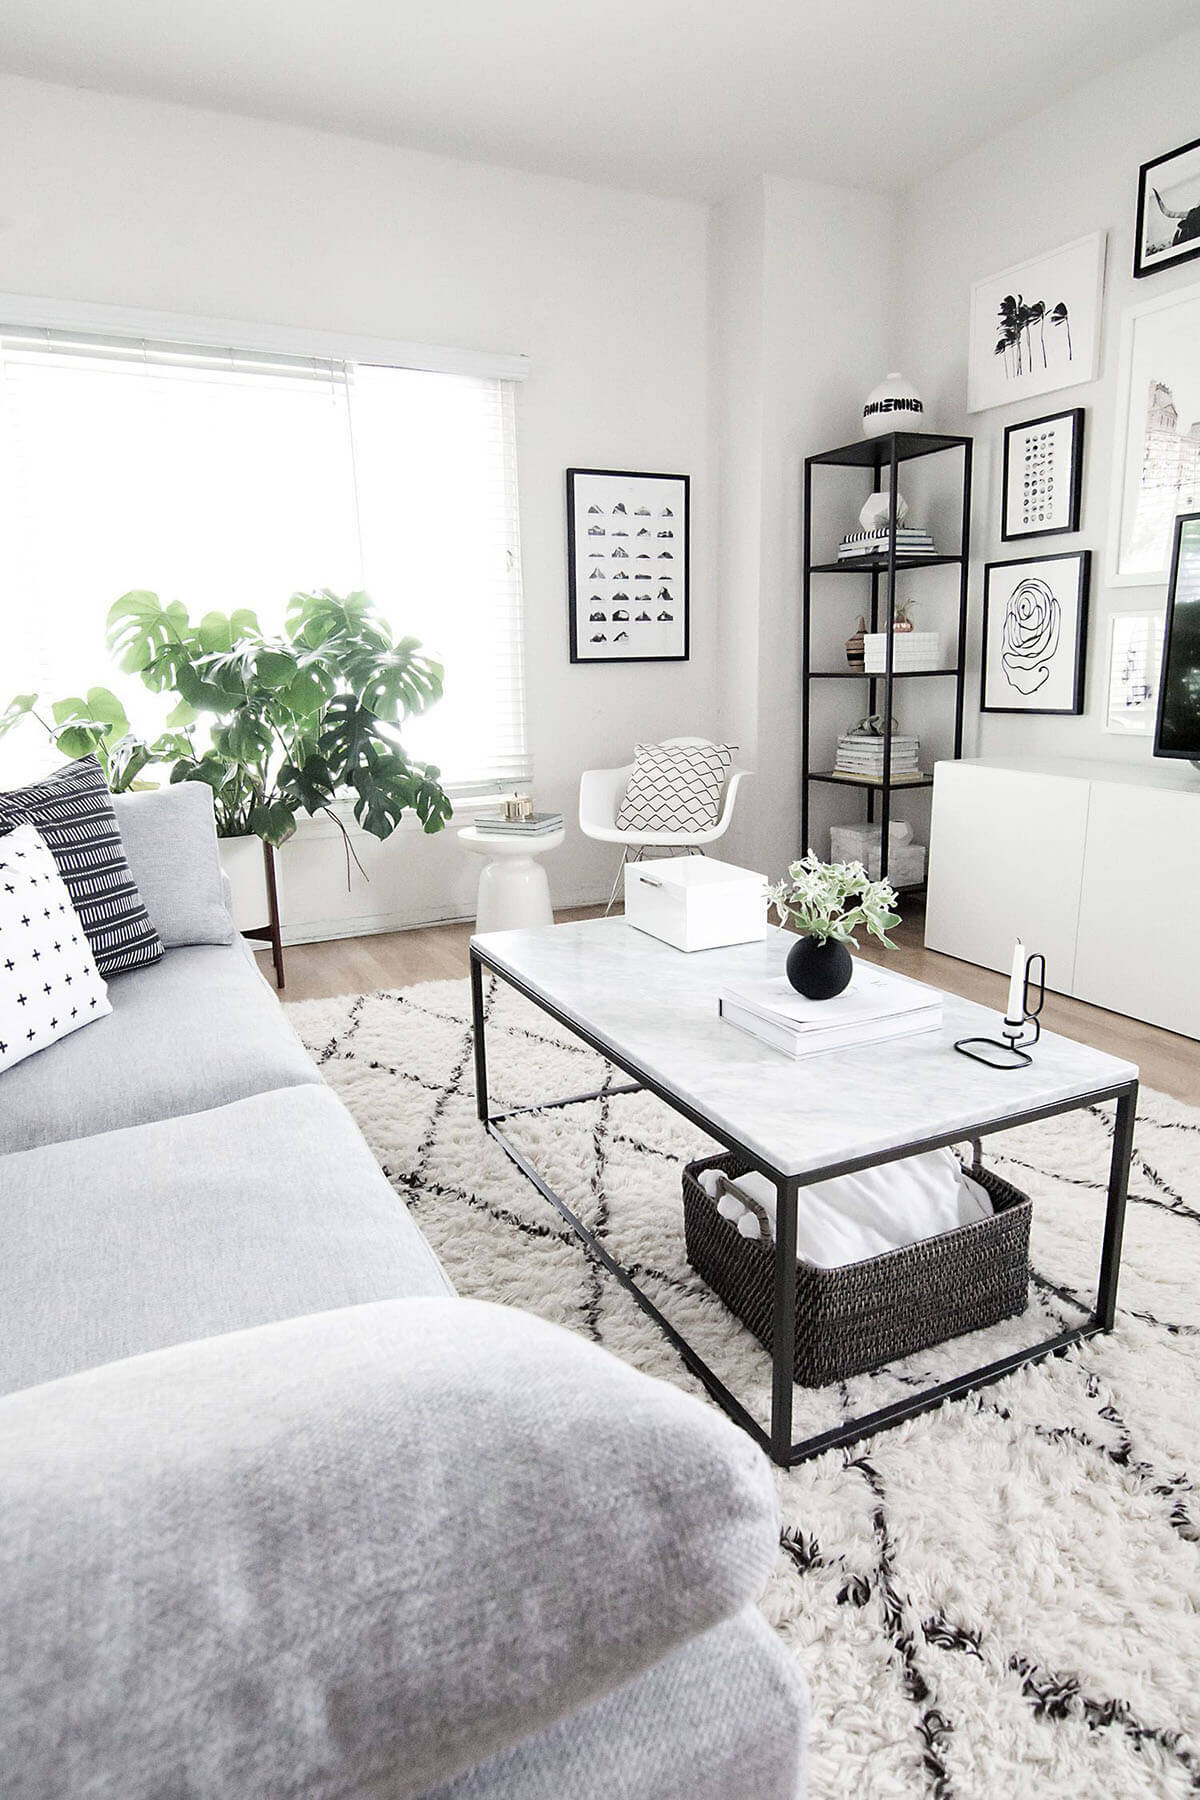 pictures of white living rooms small modern ideas 25 best room decor and design for 2019 comfortable gray black